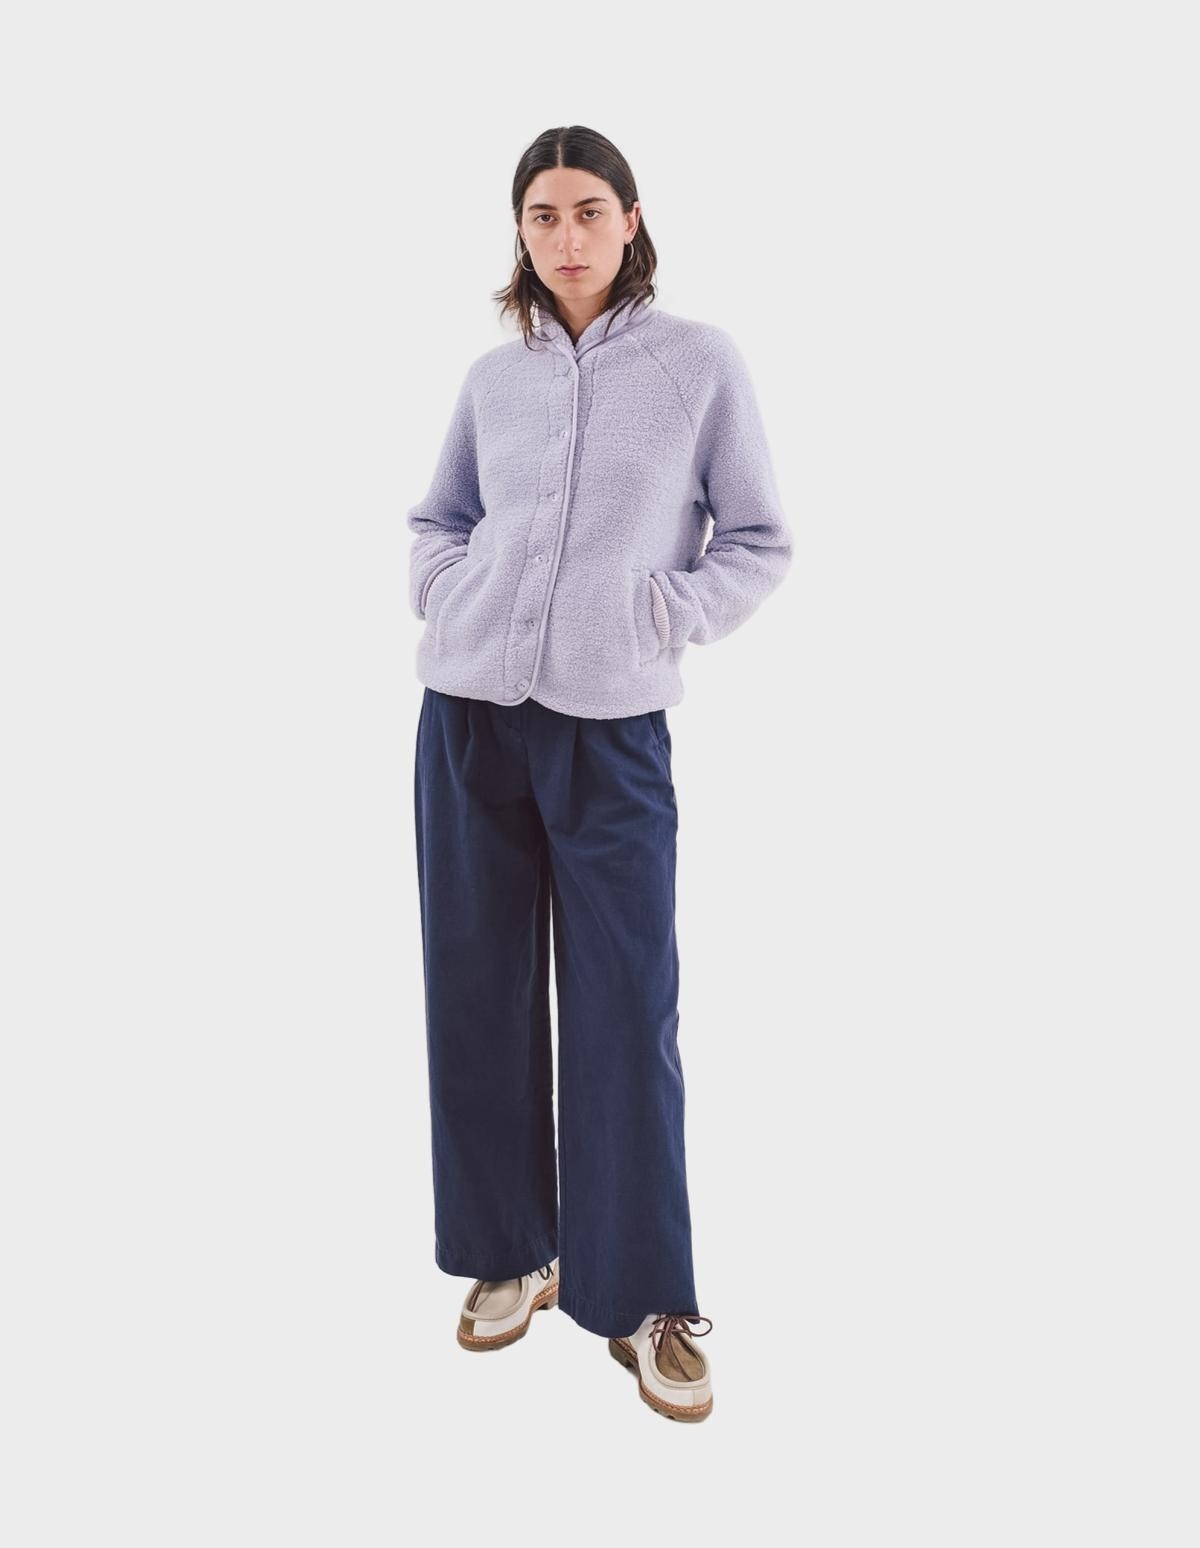 YMC You Must Create Beach Jacket in Lilac